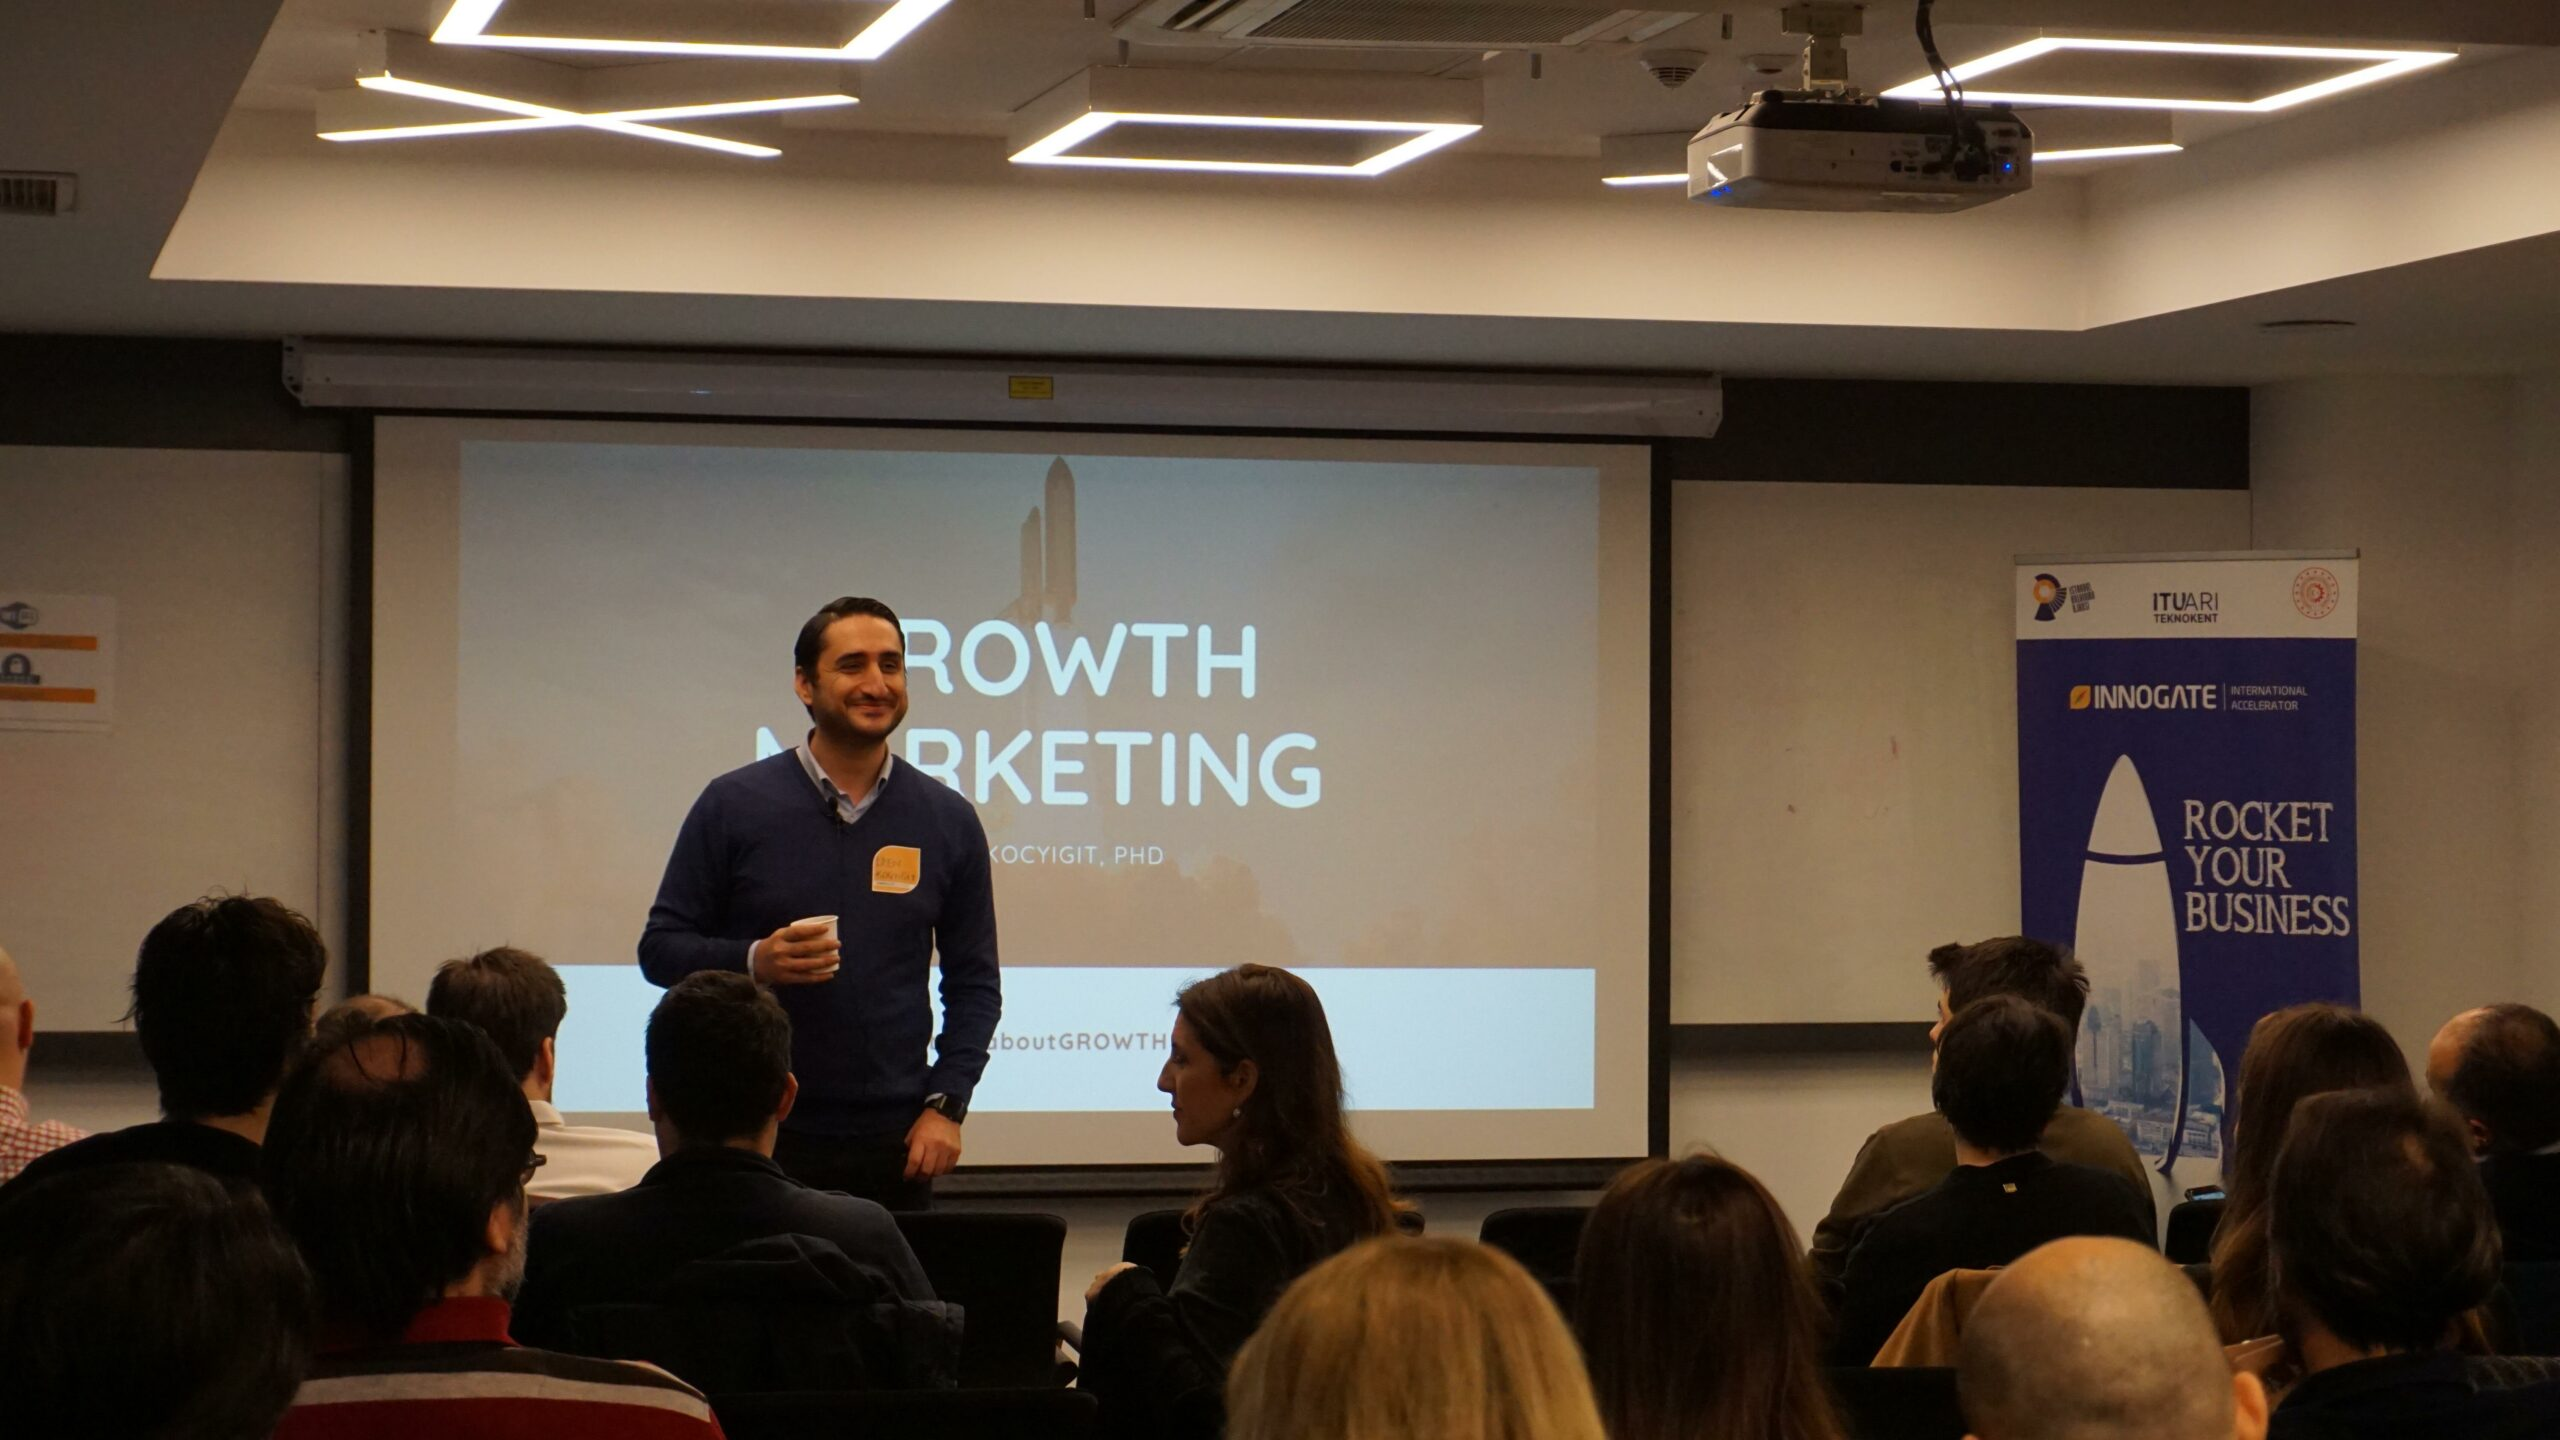 02.2019growth-and-digital-marketing-course